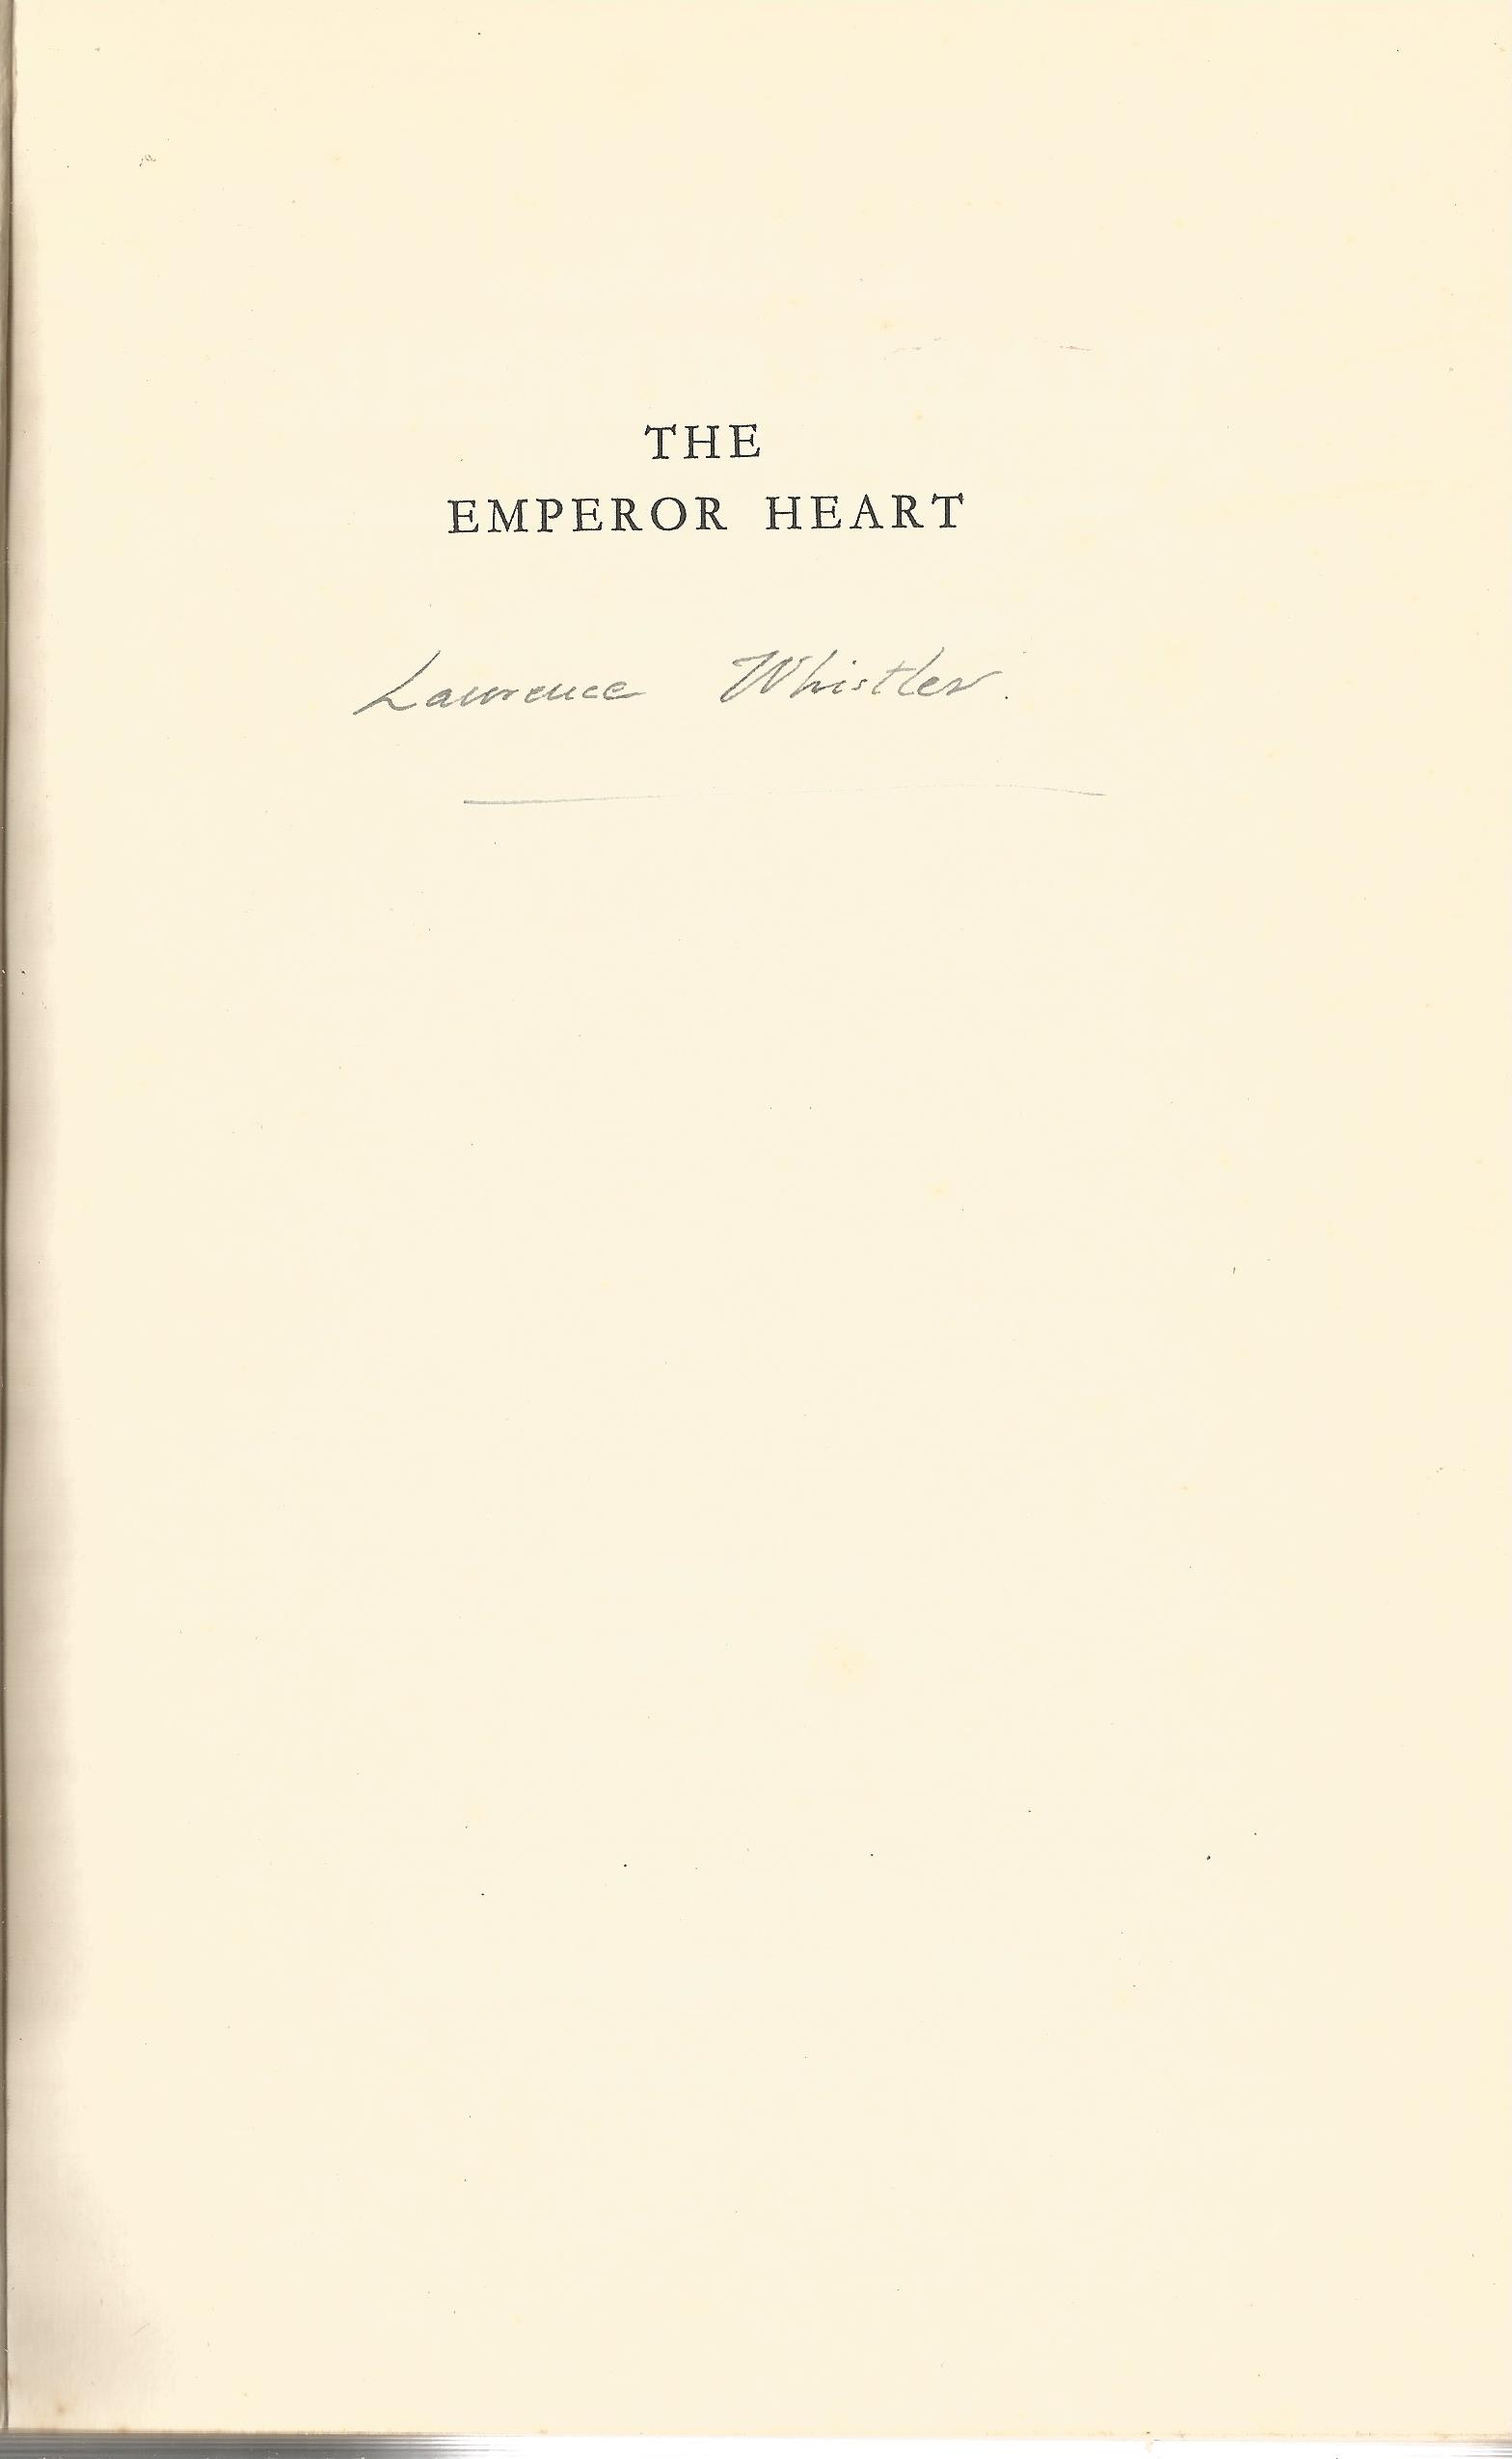 Laurence Whistler Hardback Book The Emperor Heart signed by the Author on the Second Page has a date - Image 2 of 2